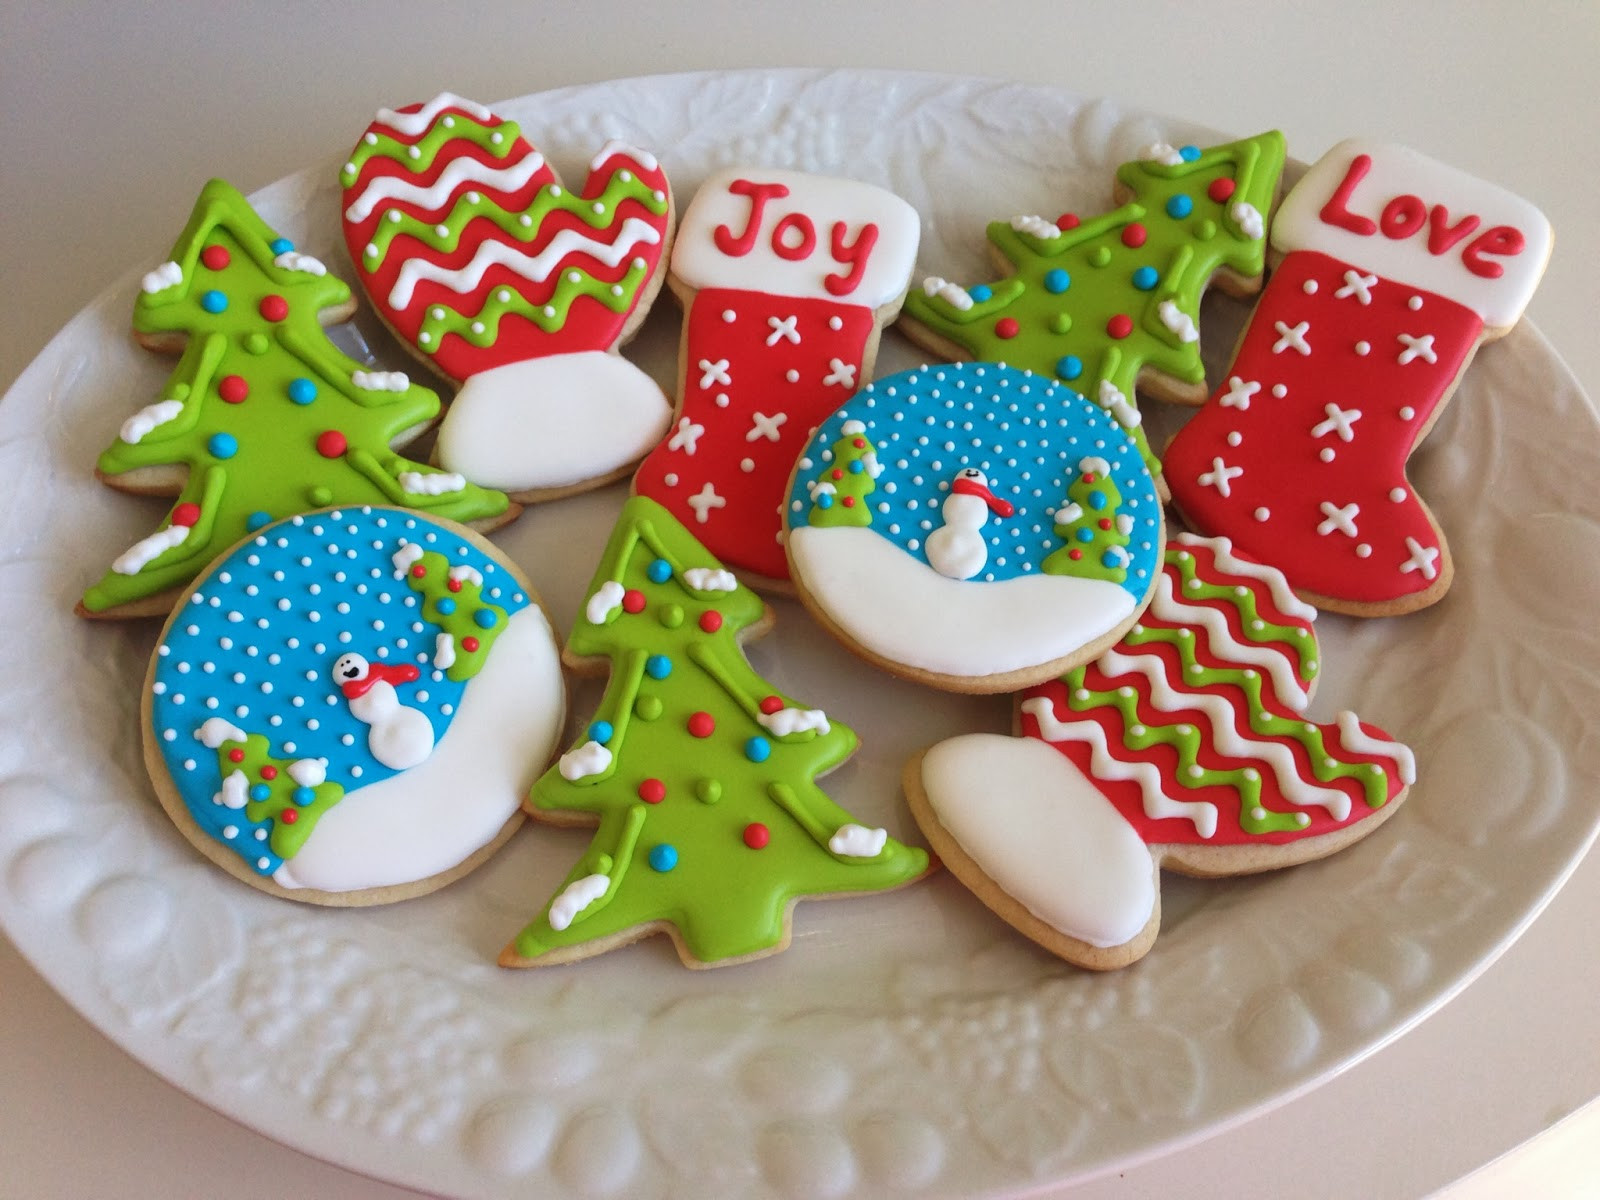 Christmas Sugar Cookie Icing Recipe  monograms & cake Christmas Cut Out Sugar Cookies with